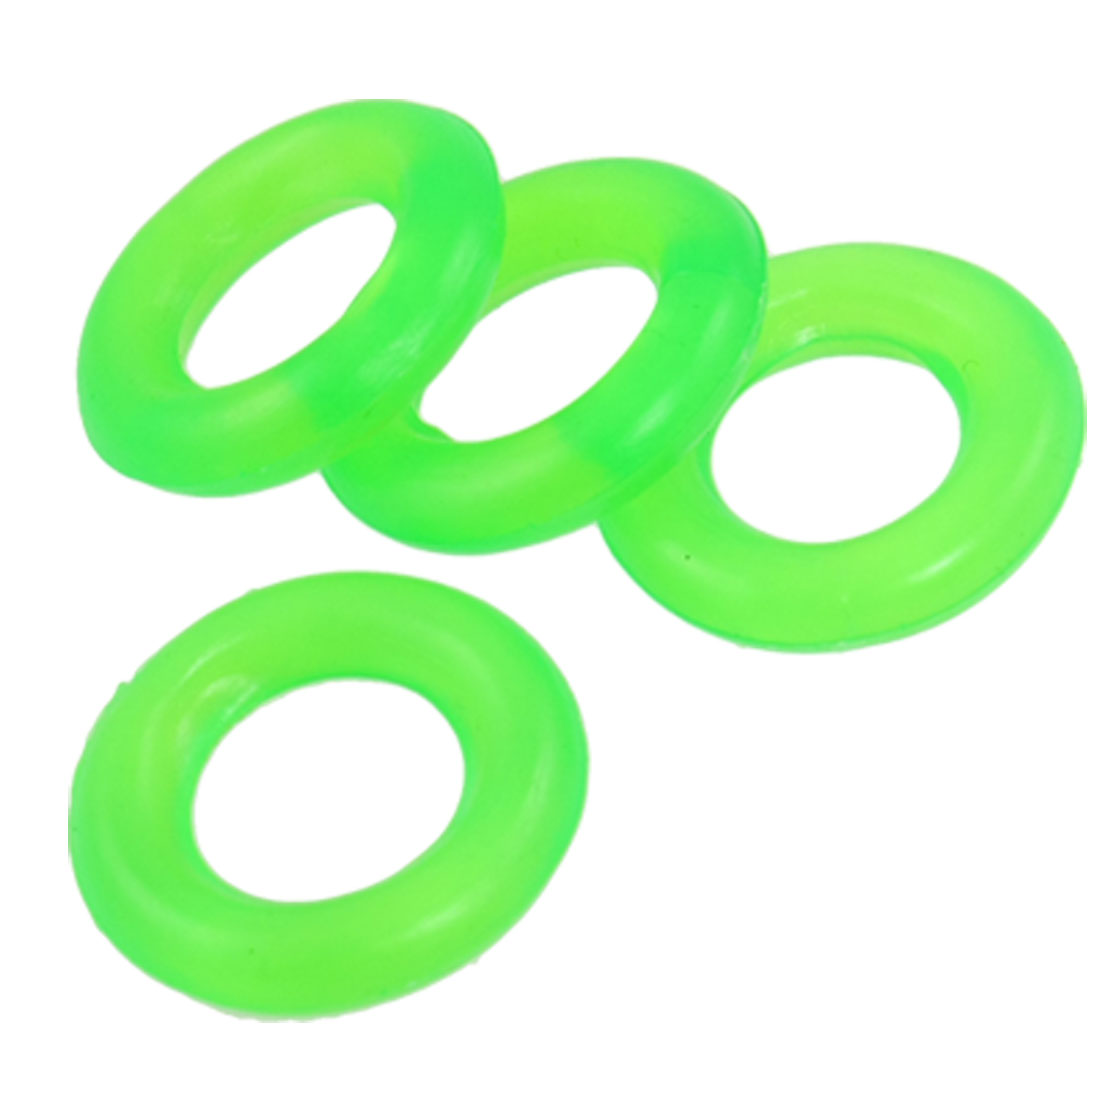 4 Pcs Green Rubber Anti-slip Circle O-rings for Fishing Rod